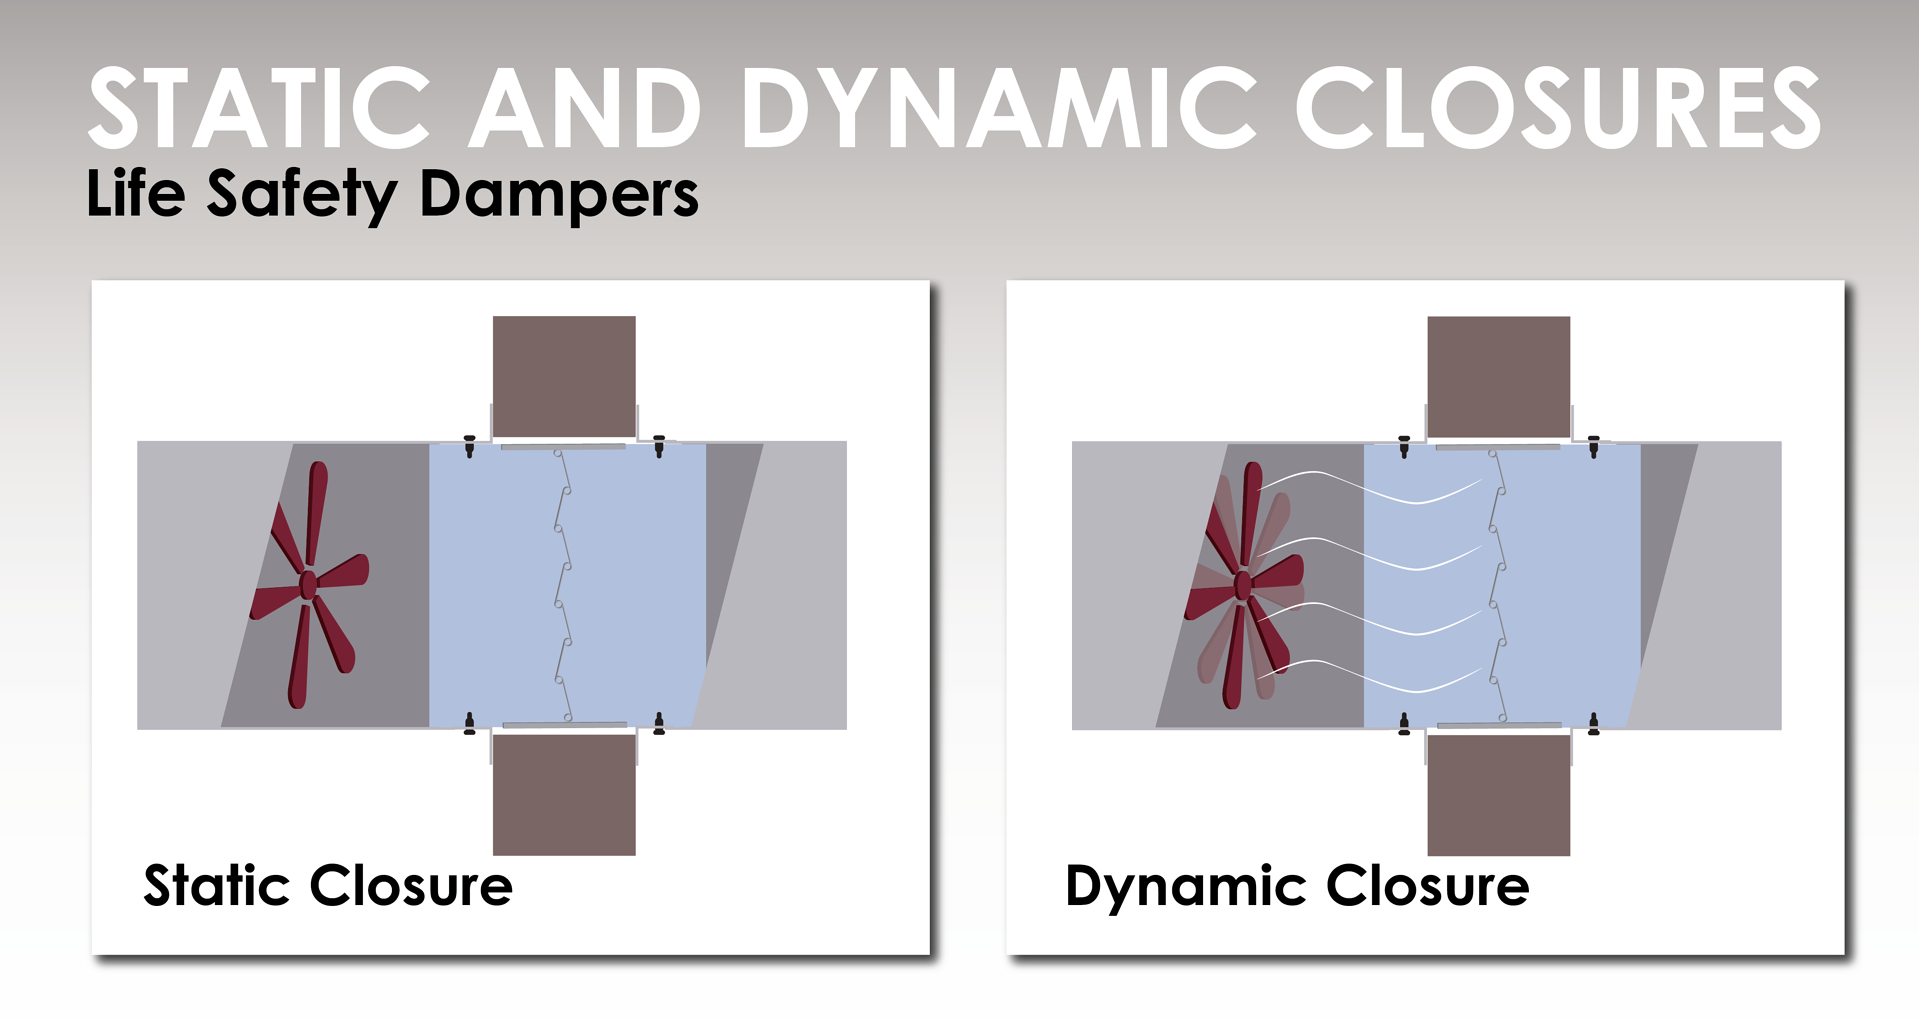 Static life safety dampers do not close against airflow. Dynamic life safety dampers will close.